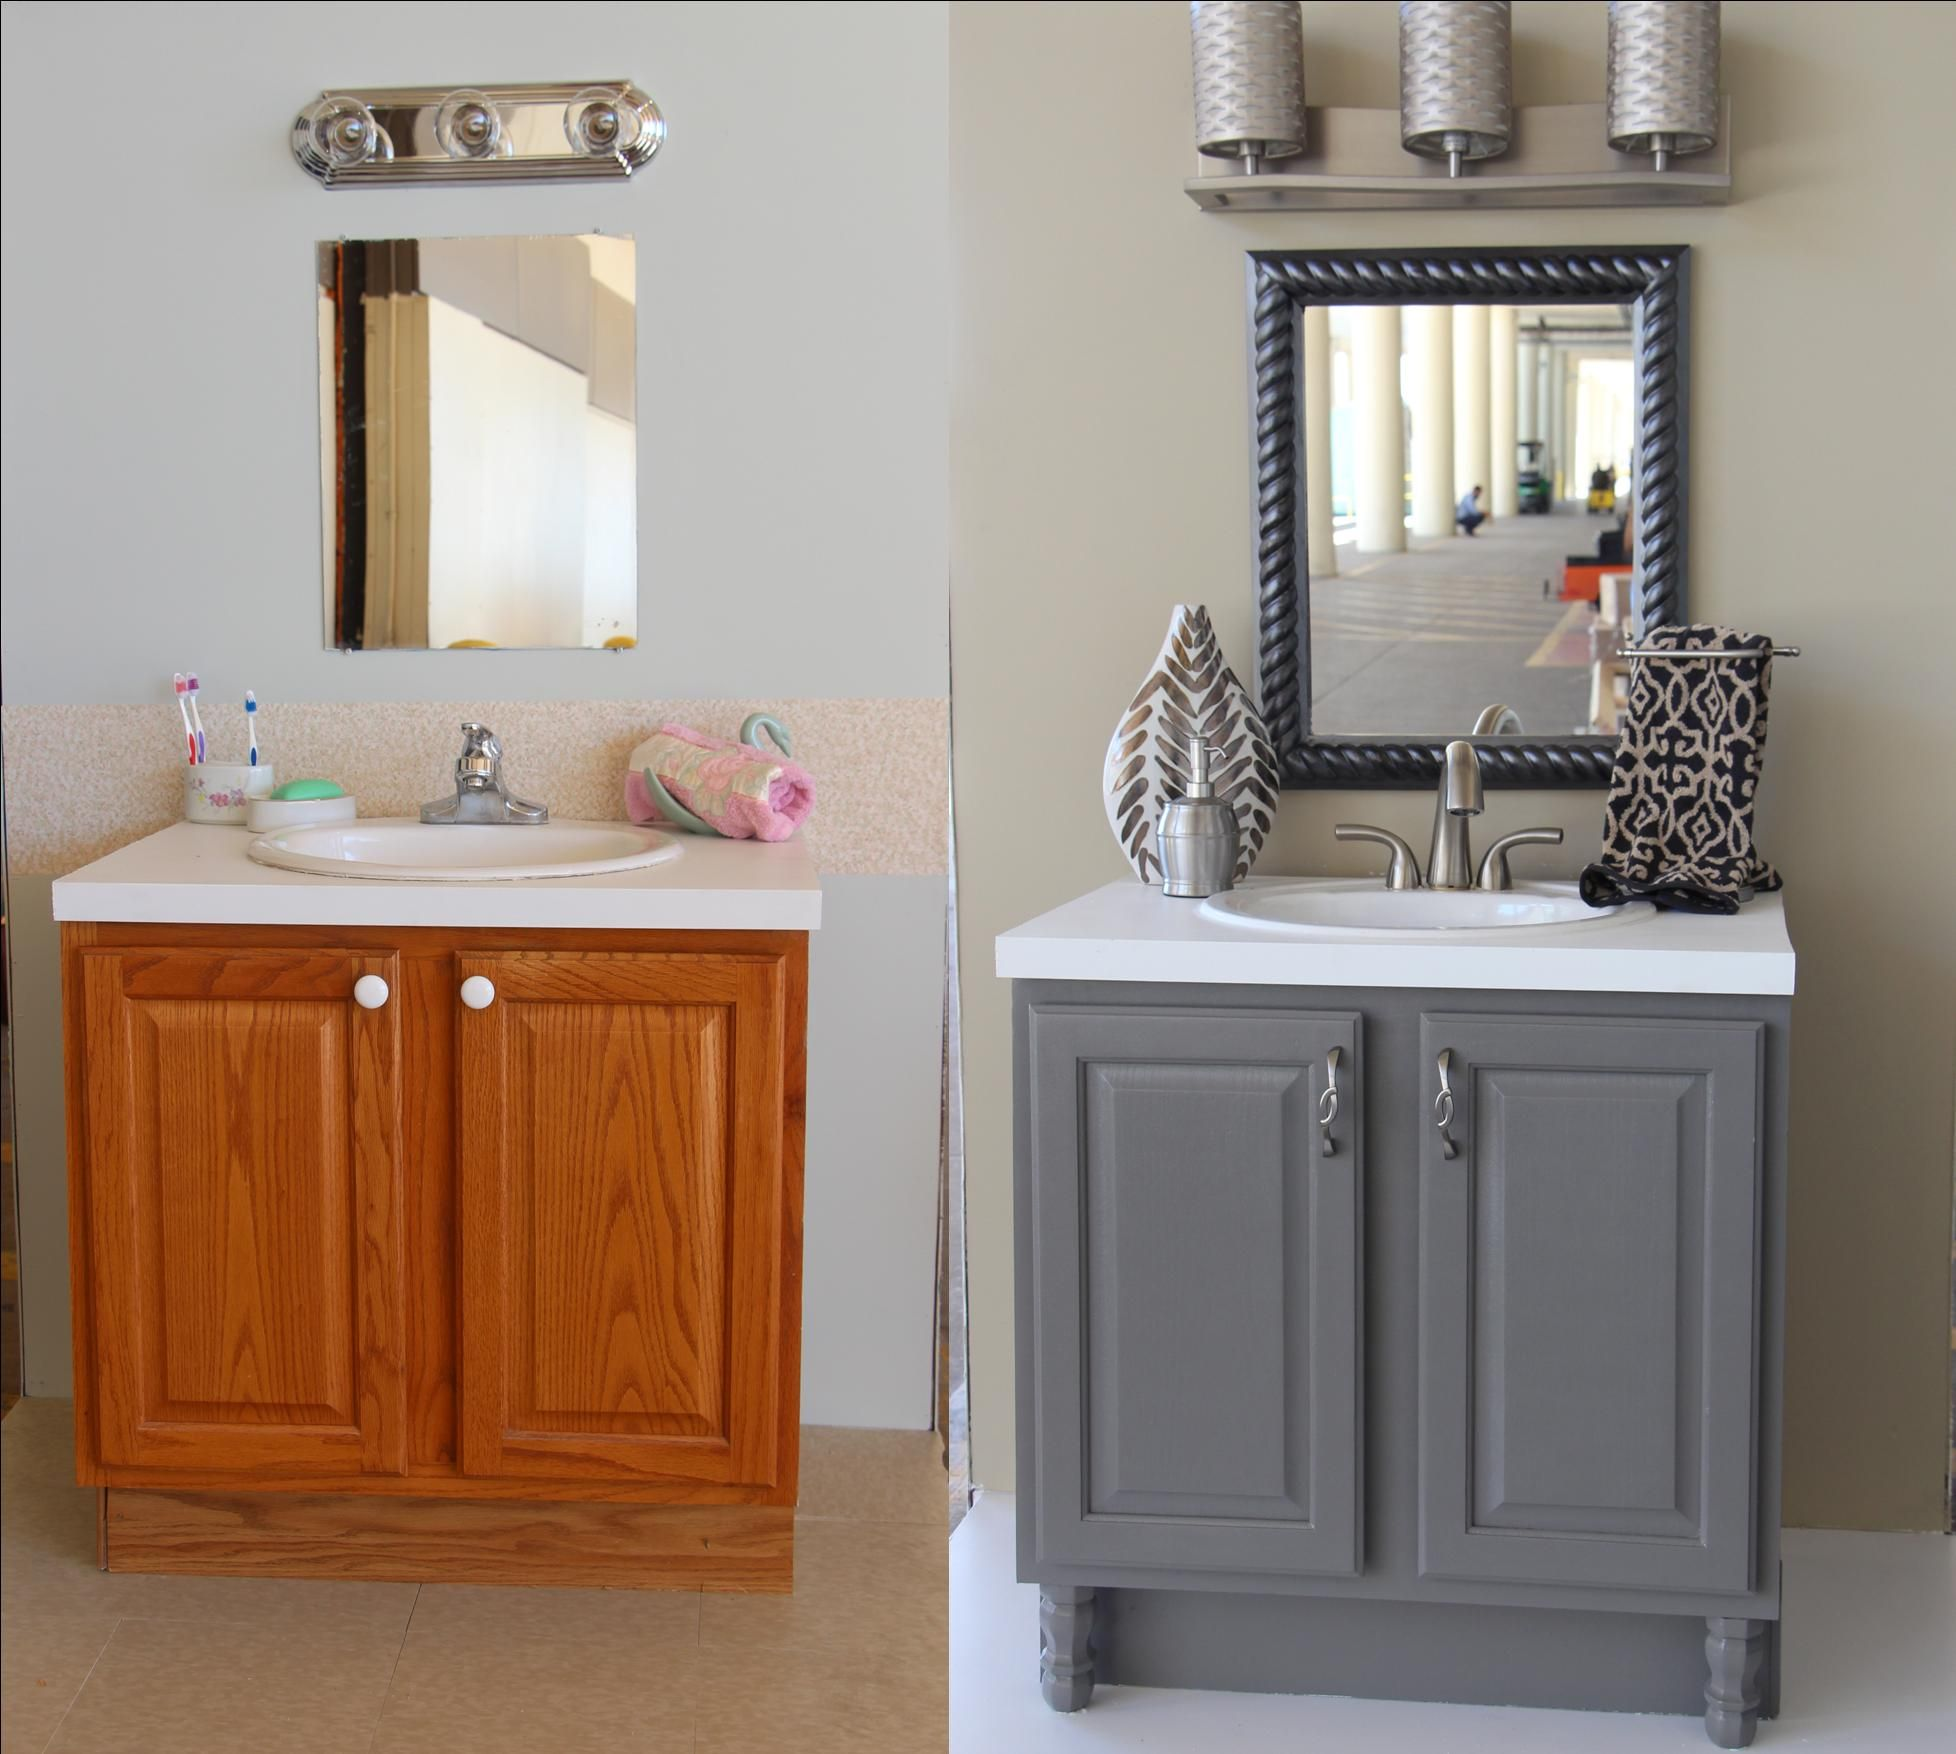 bathroom updates you can do this weekend! (with images